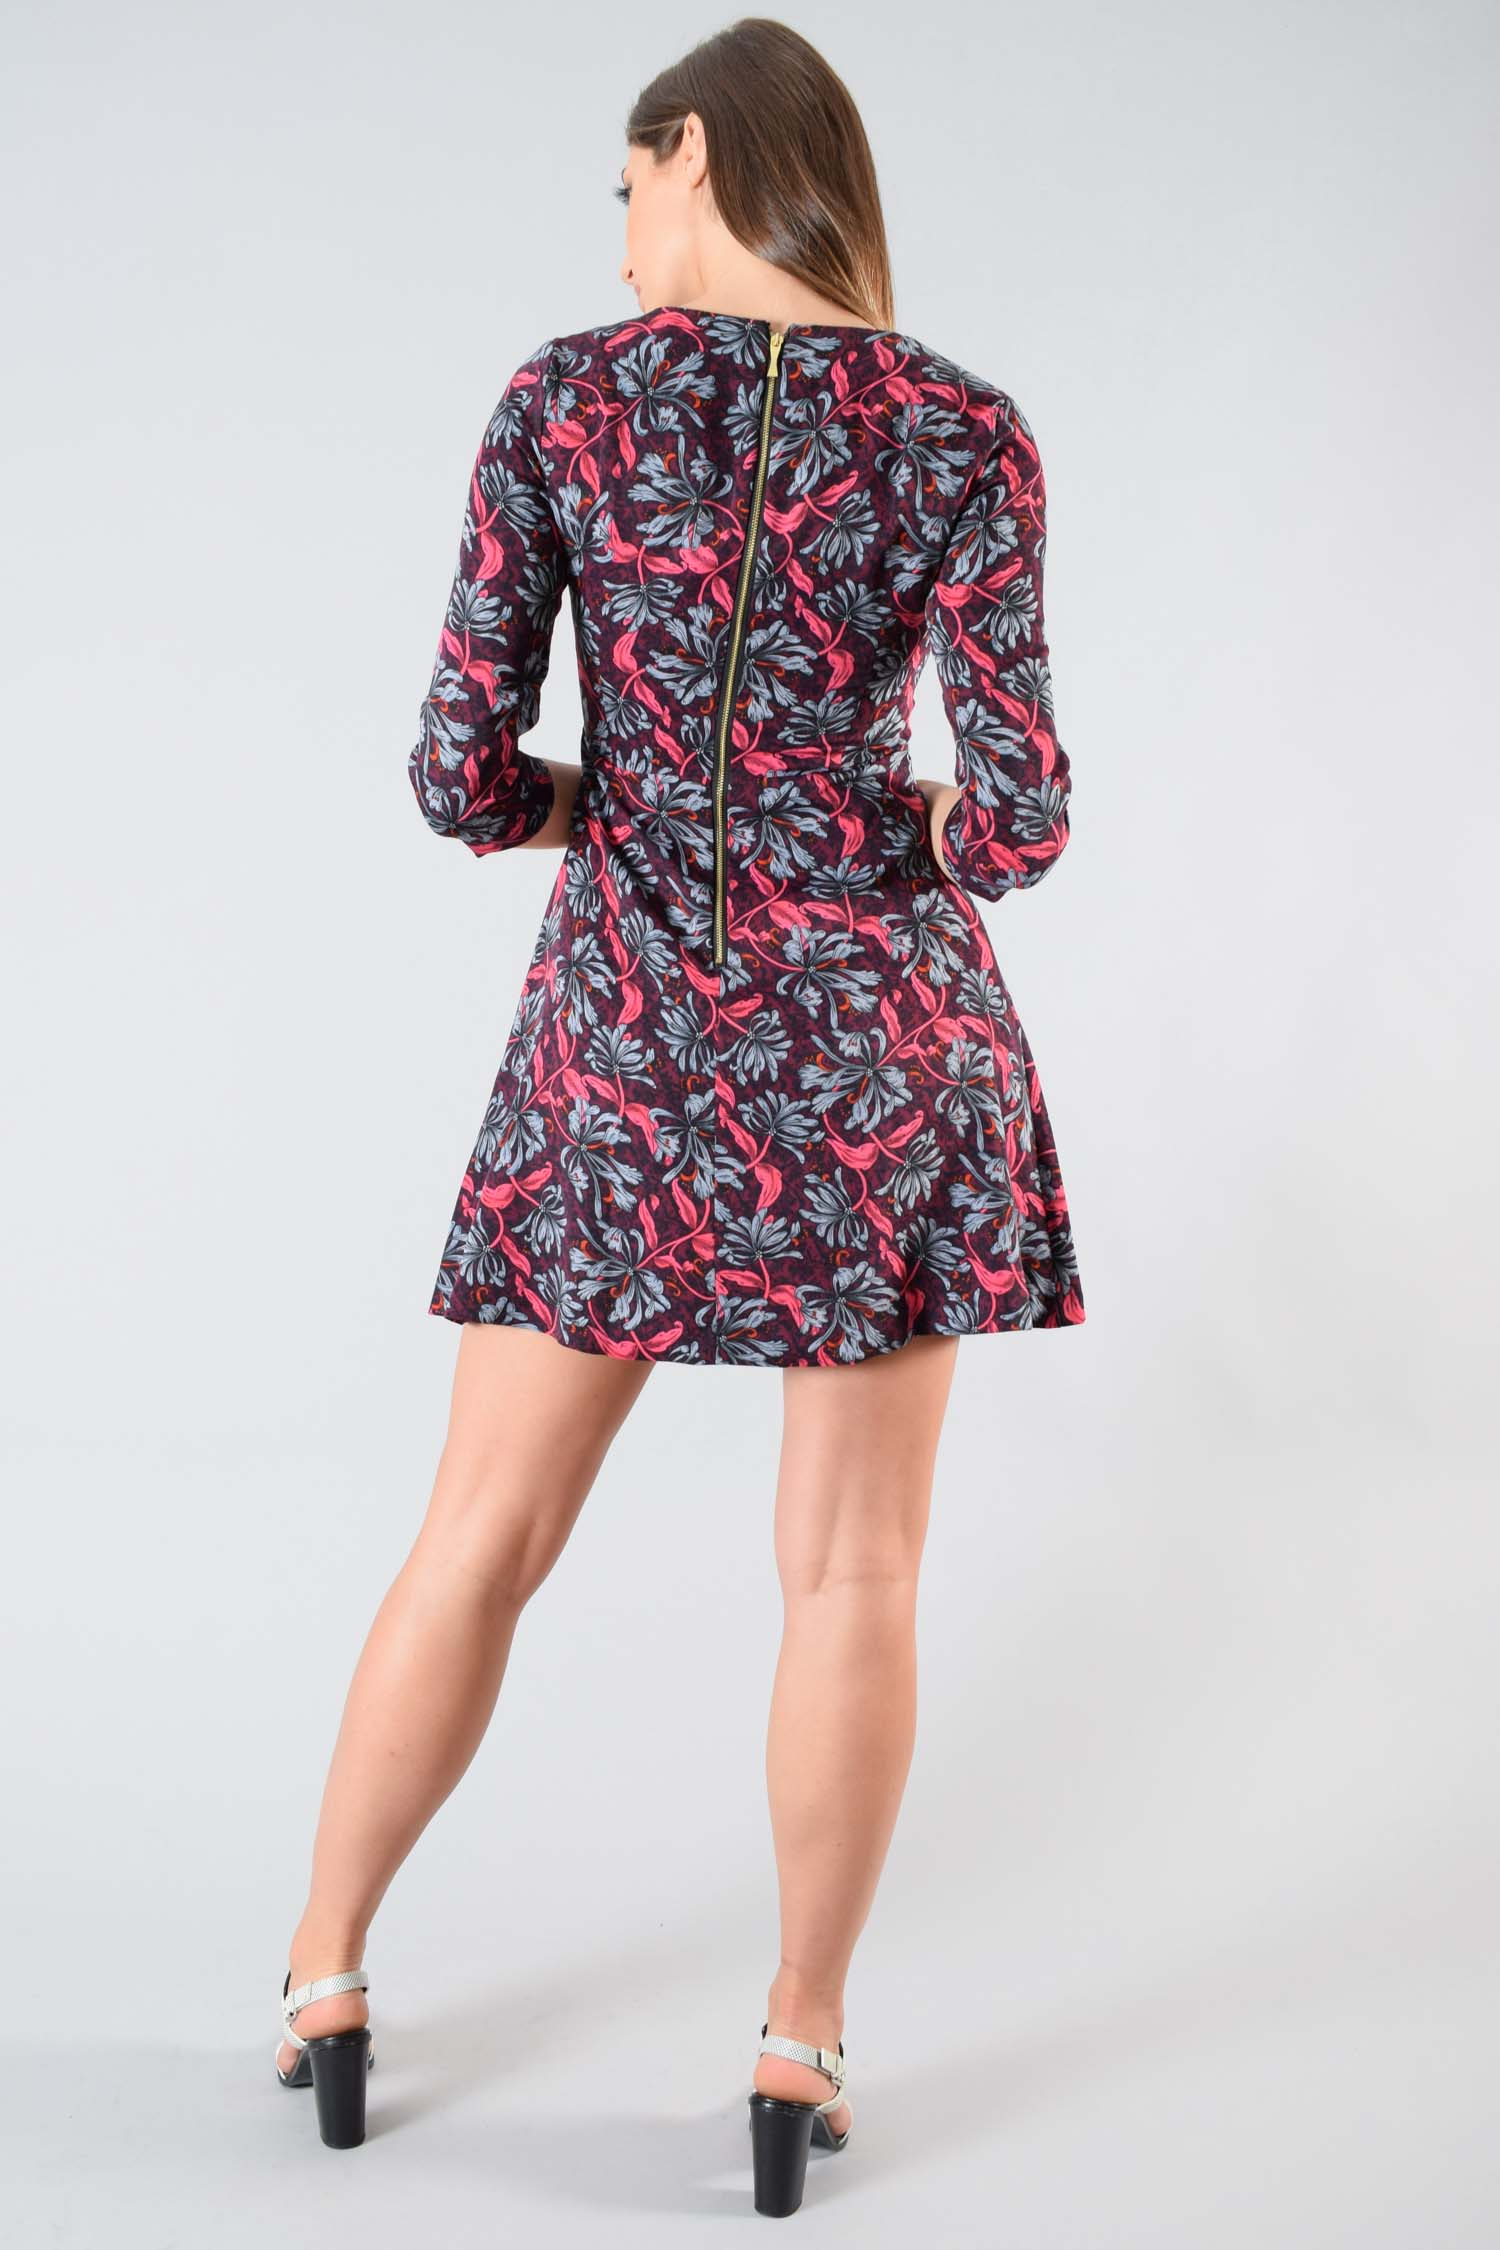 Rebecca Taylor Maroon Floral Printed Midi-Sleeve Dress Size 2